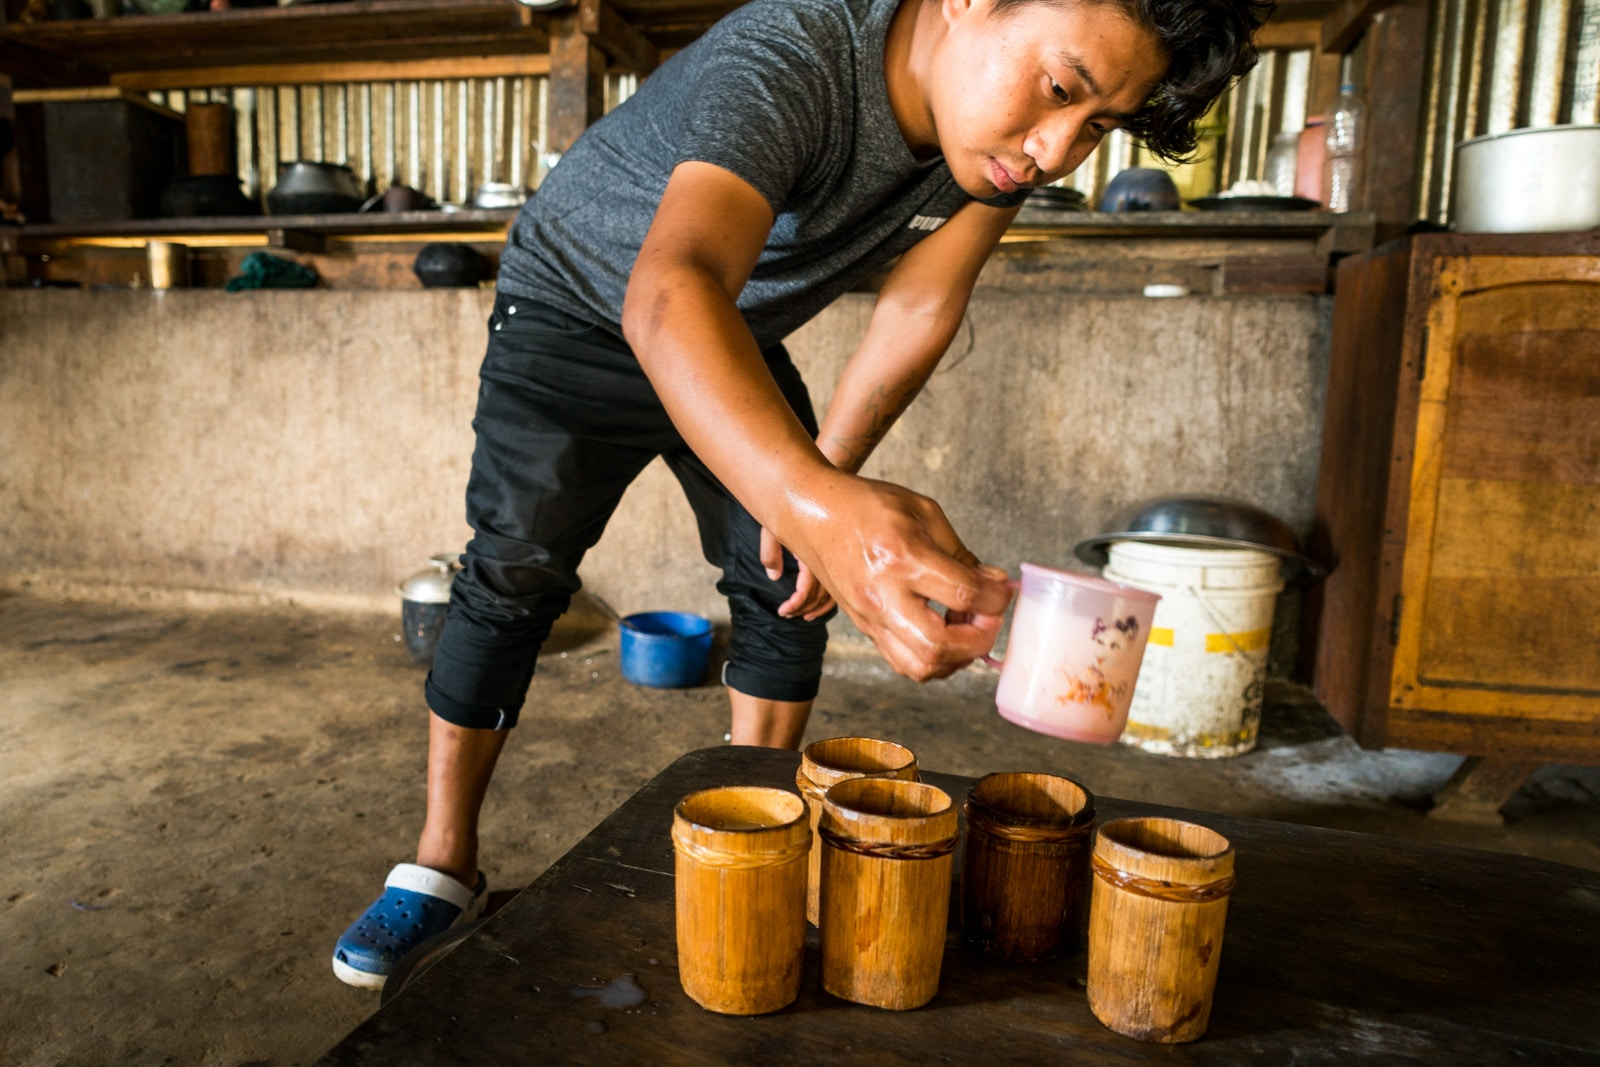 5 reasons to visit Northeast India - Sharing Manipuri yu rice beer with friends - Lost With Purpose travel blog